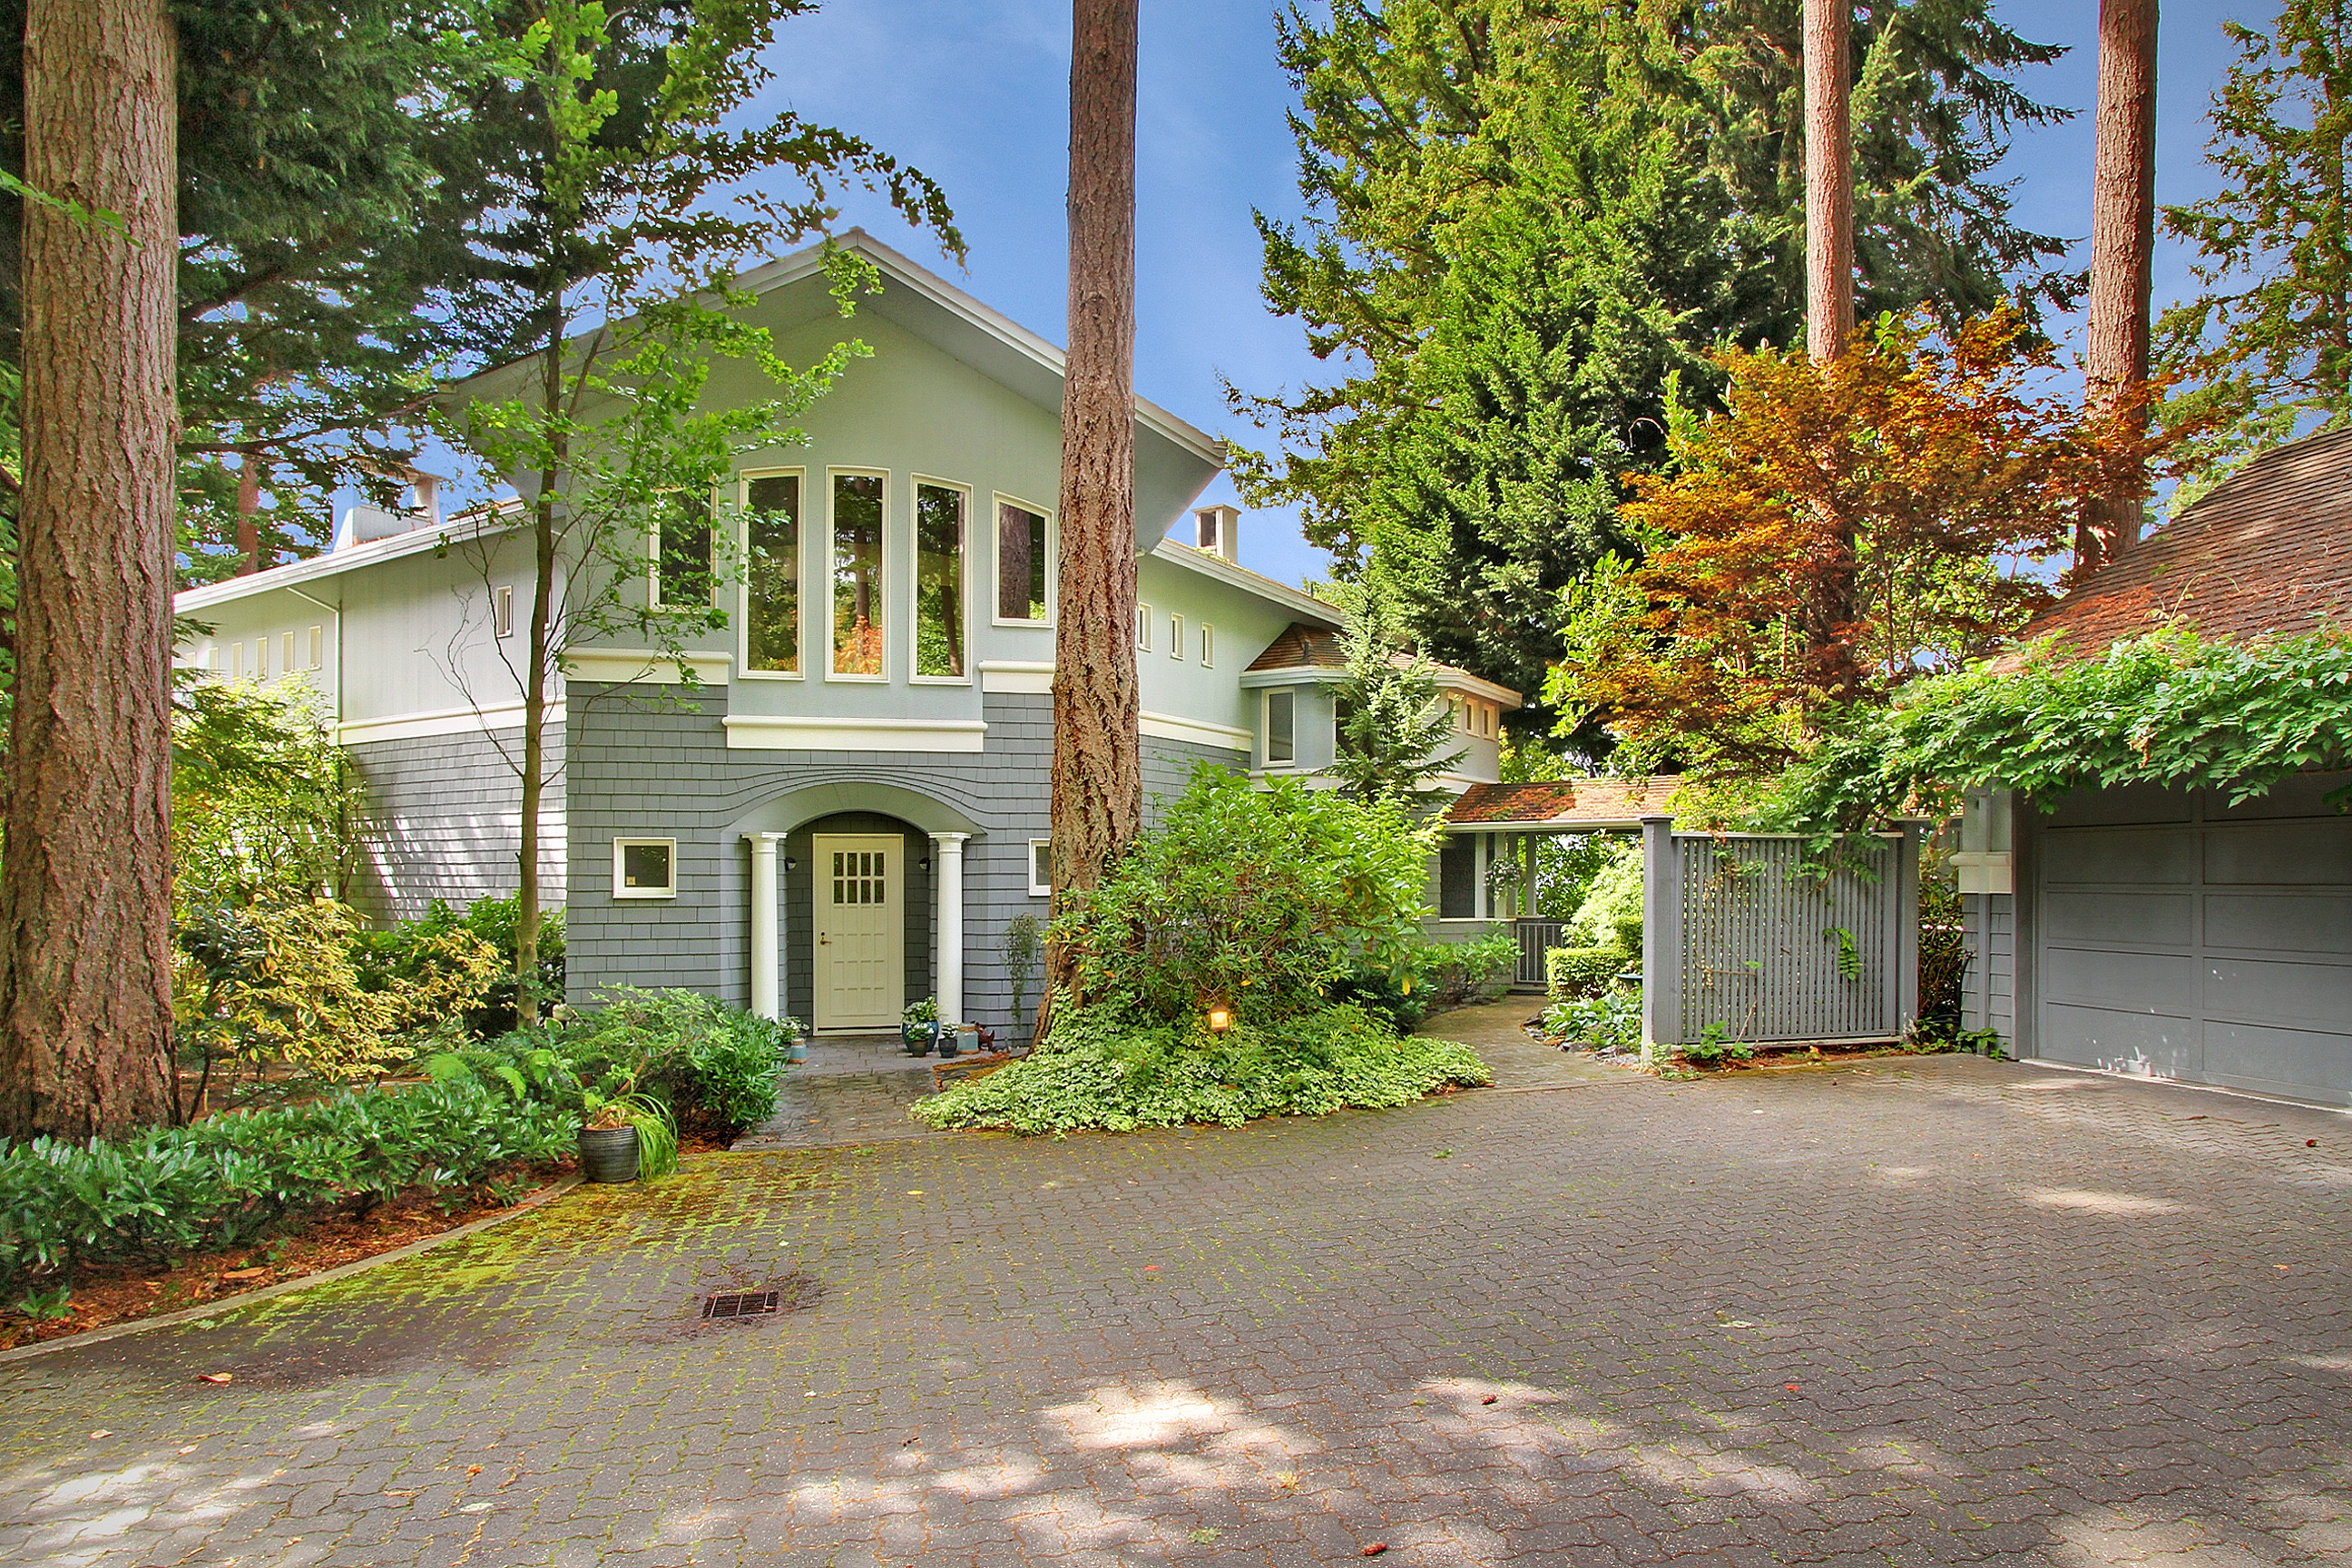 Single Family Home for Sale at Allen Point Living 9606 Beachwood Dr NW Gig Harbor, Washington 98332 United States